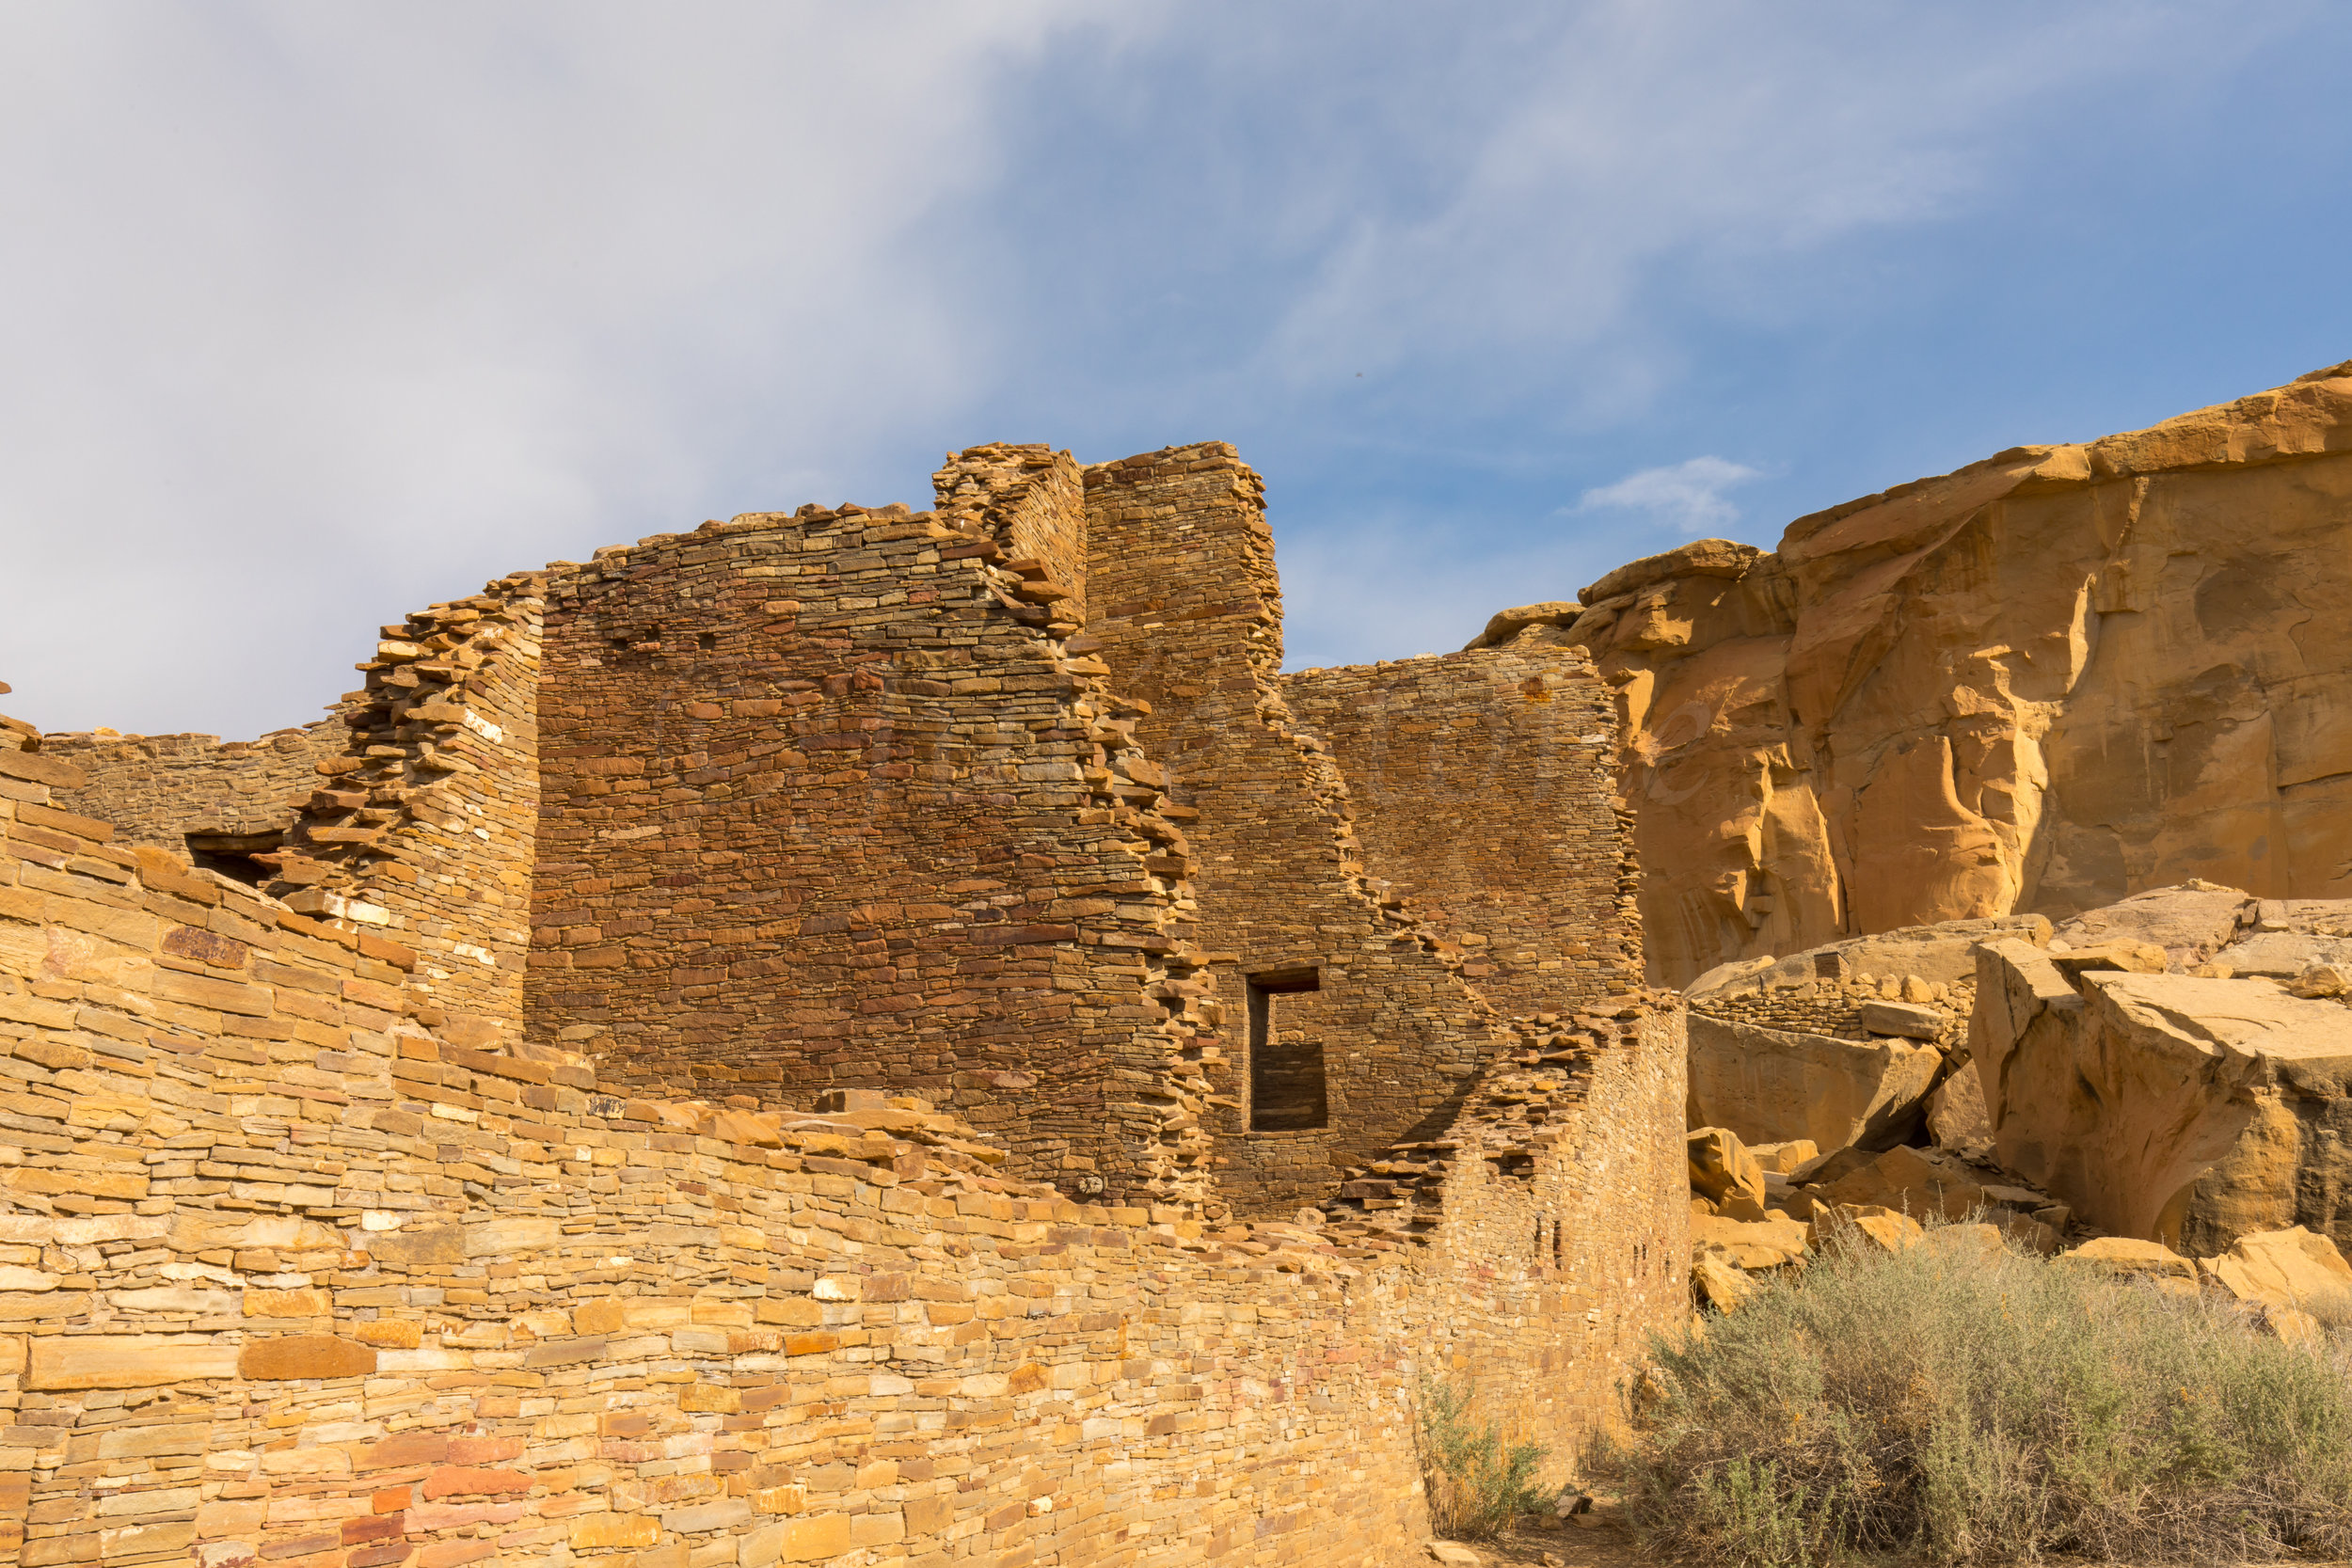 Chaco National Park, Image # 6283